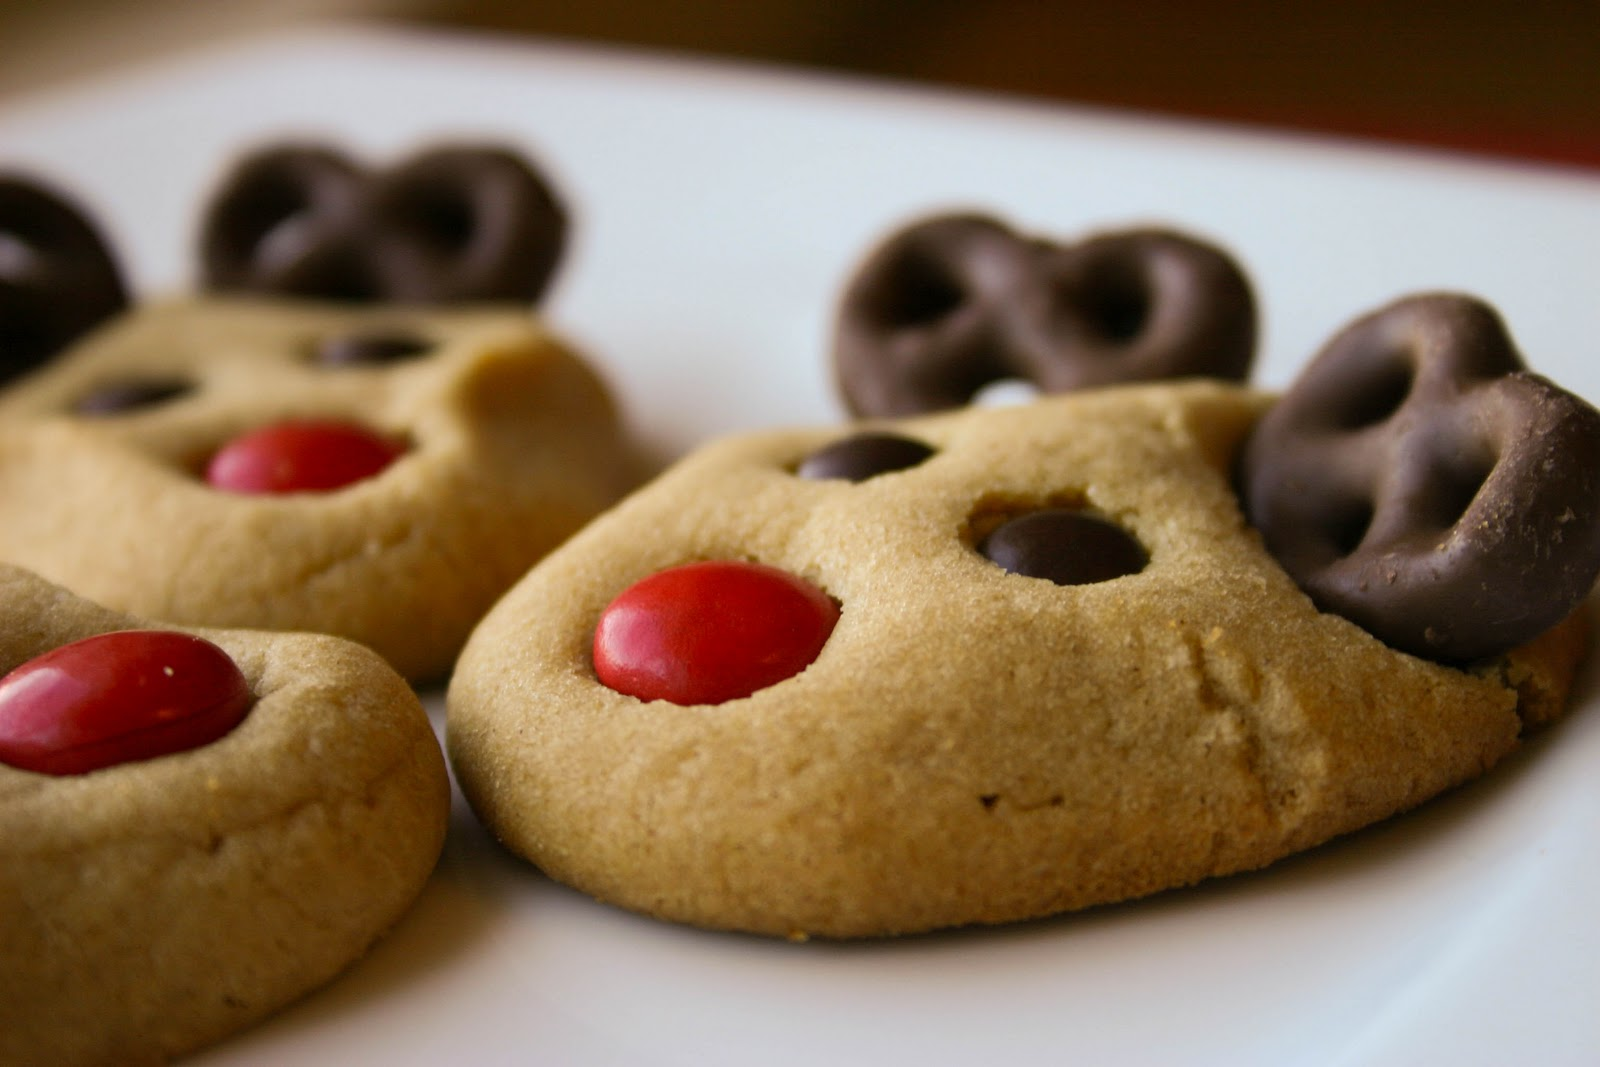 Easy Reindeer Cookies One year my son Eric wanted to buy everyone in his class a present I suggest we make them a treat instead So we made these Reindeer Cookies using a cookie mix pretzels chocolate chips and redhotsGretchen Vandenberghe Toledo Ohio